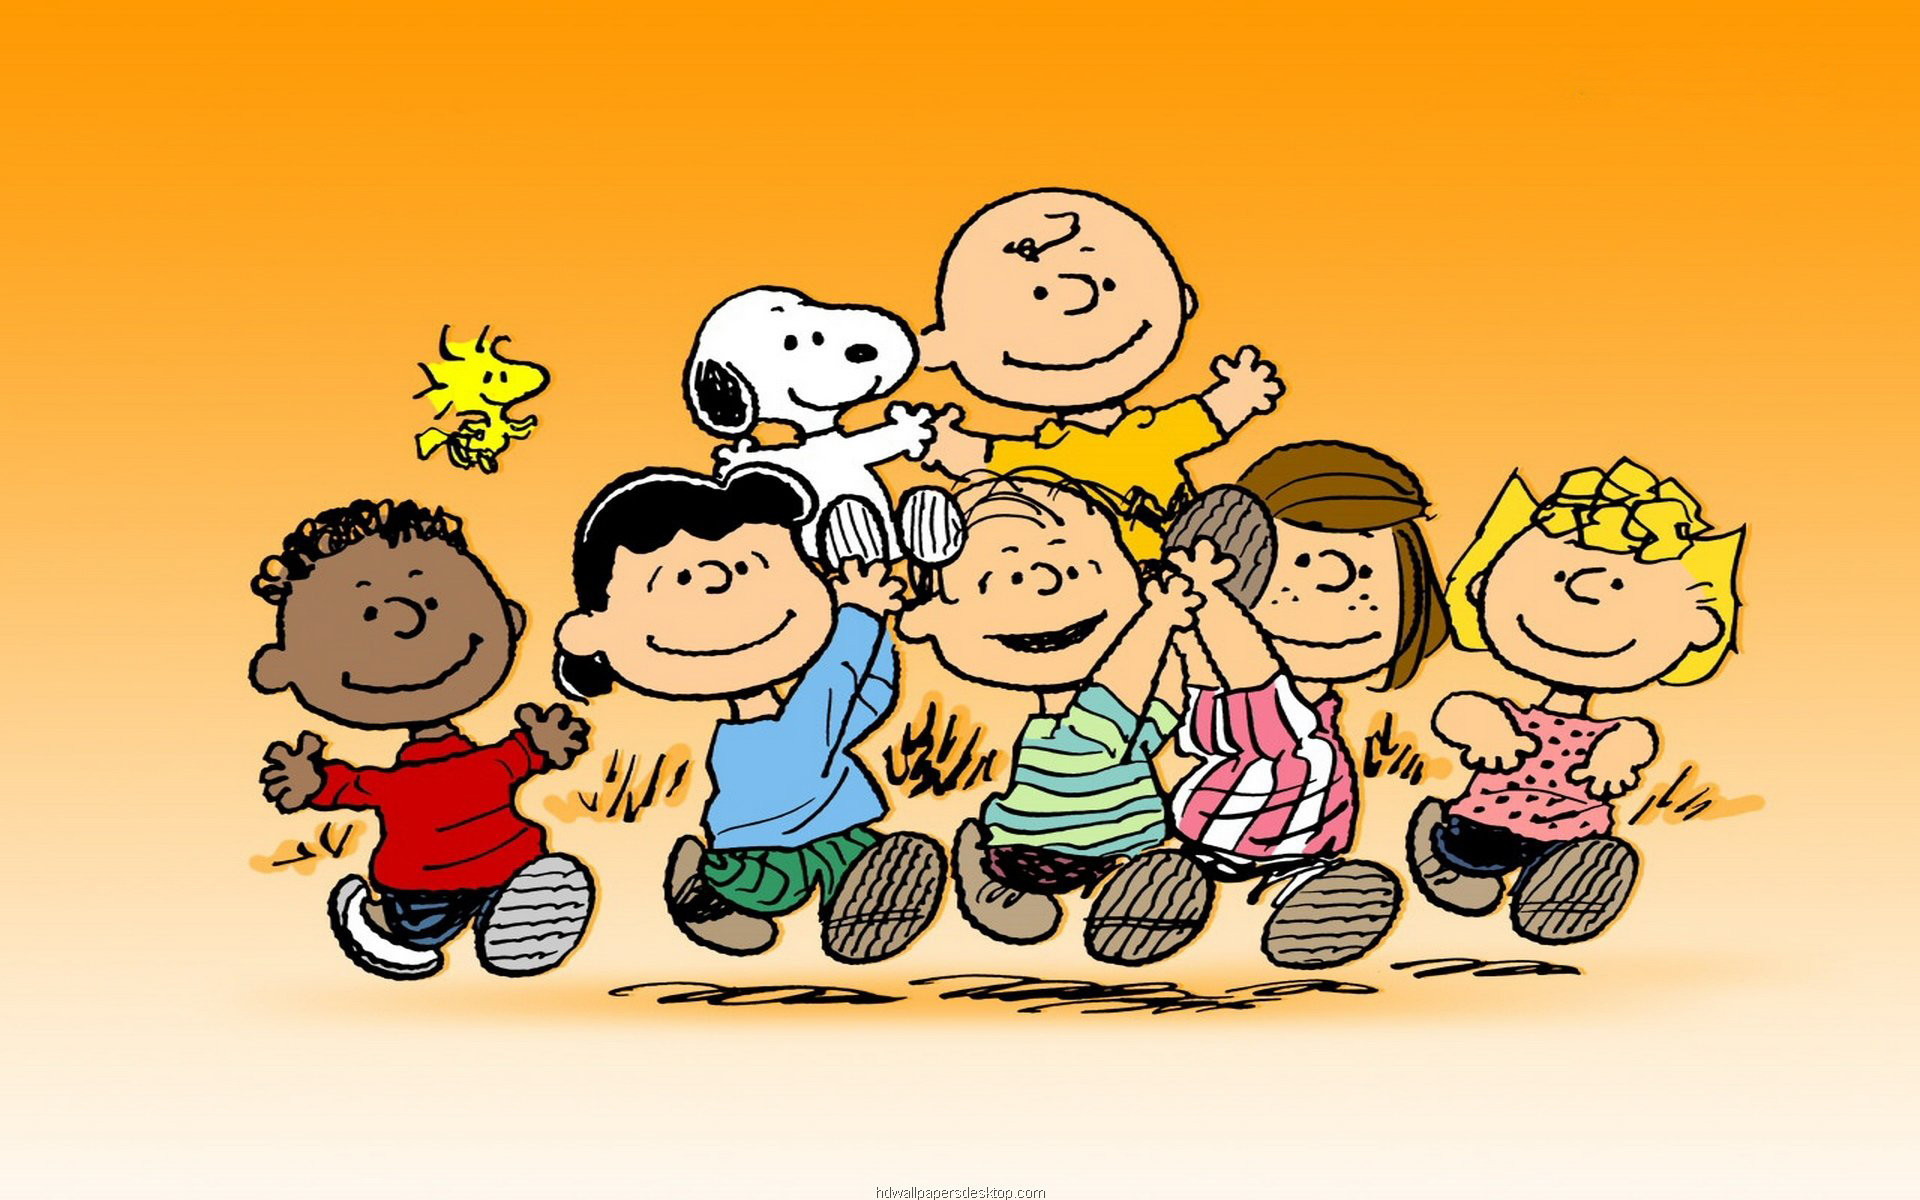 Res: 1920x1200, Snoopy wallpaper cartoon wallpapers cartoons image images imagepages.